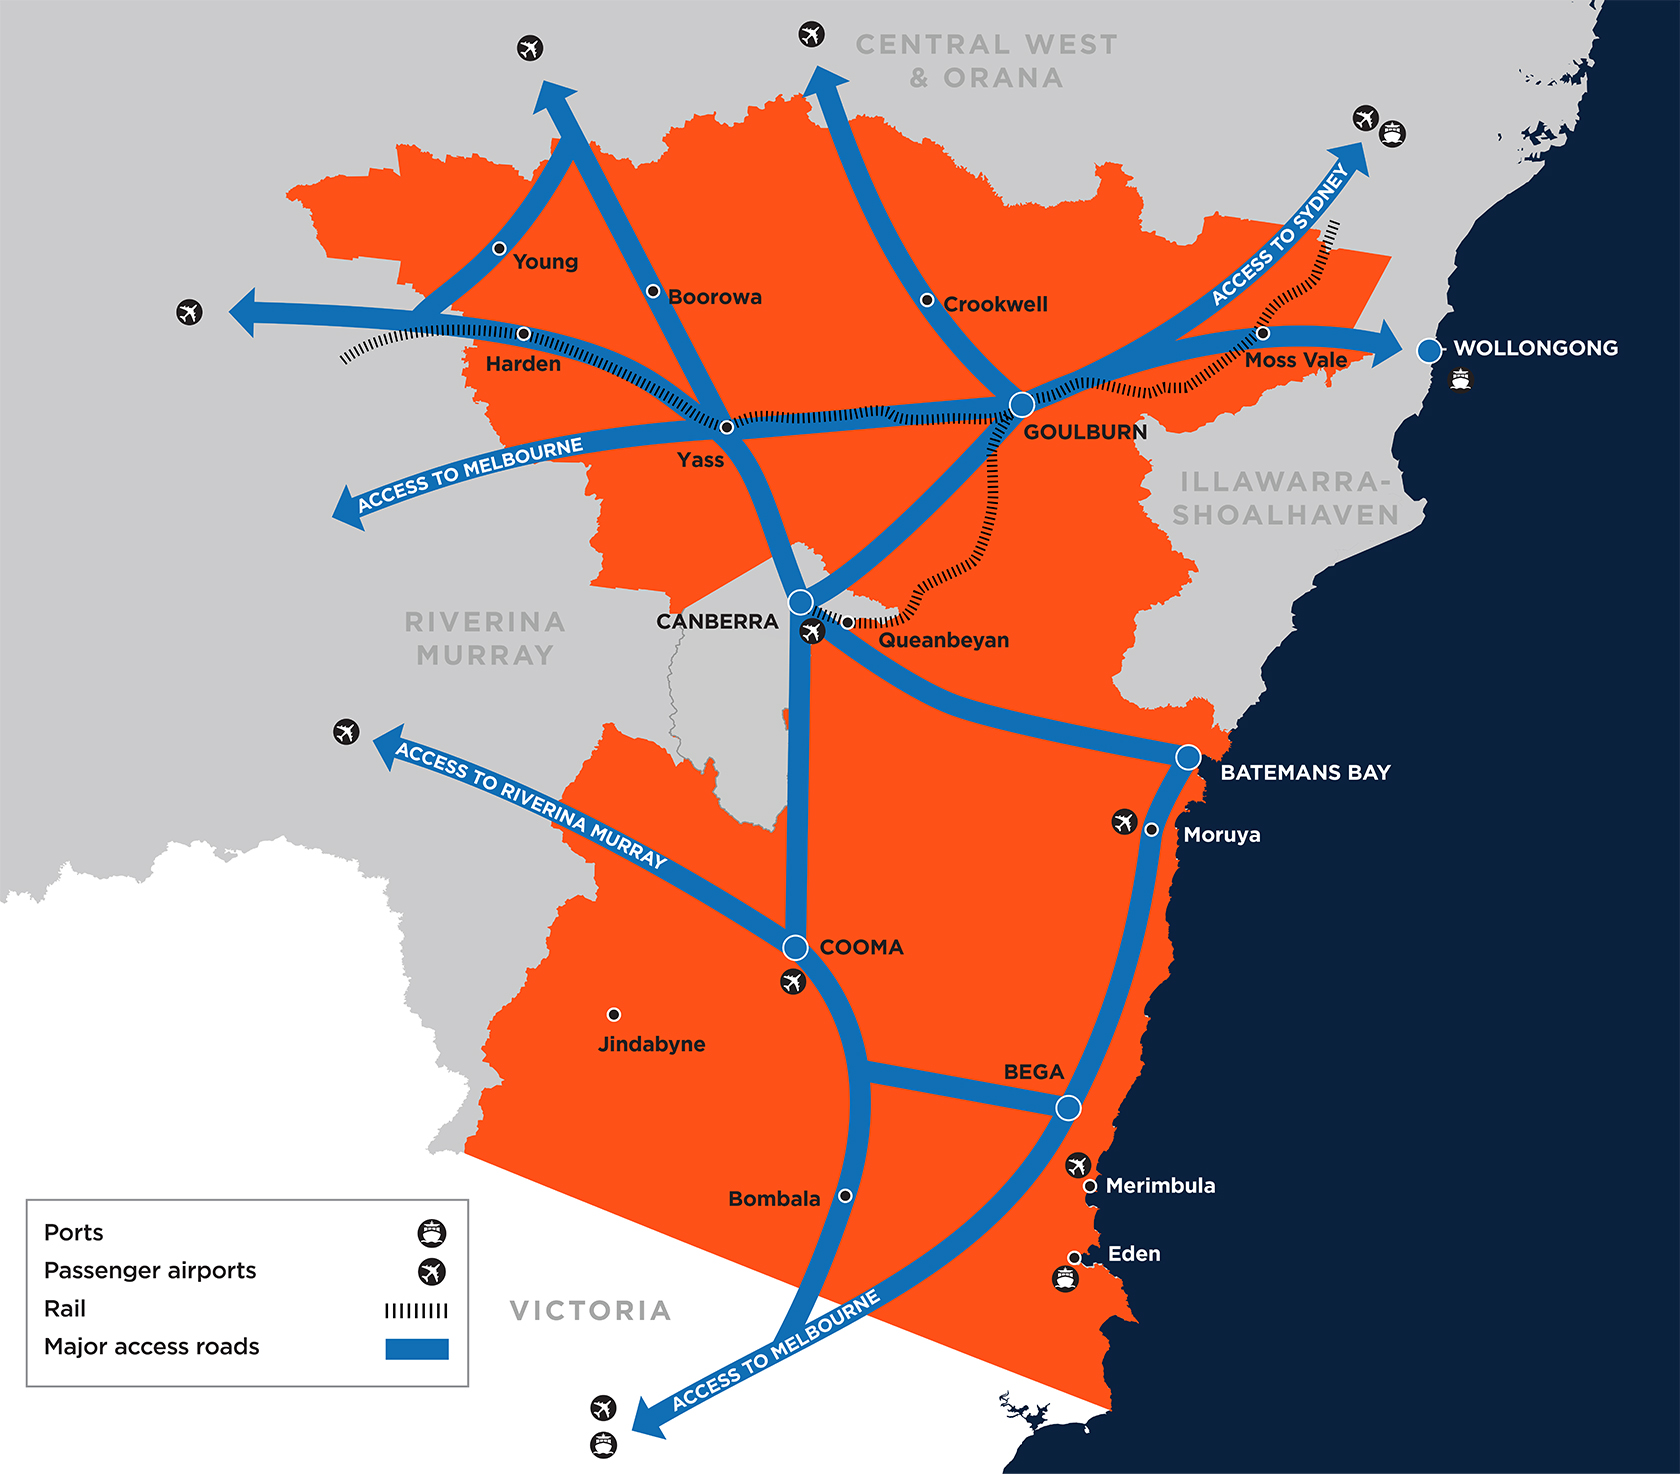 Key infrastructure supporting South East and Tablelands